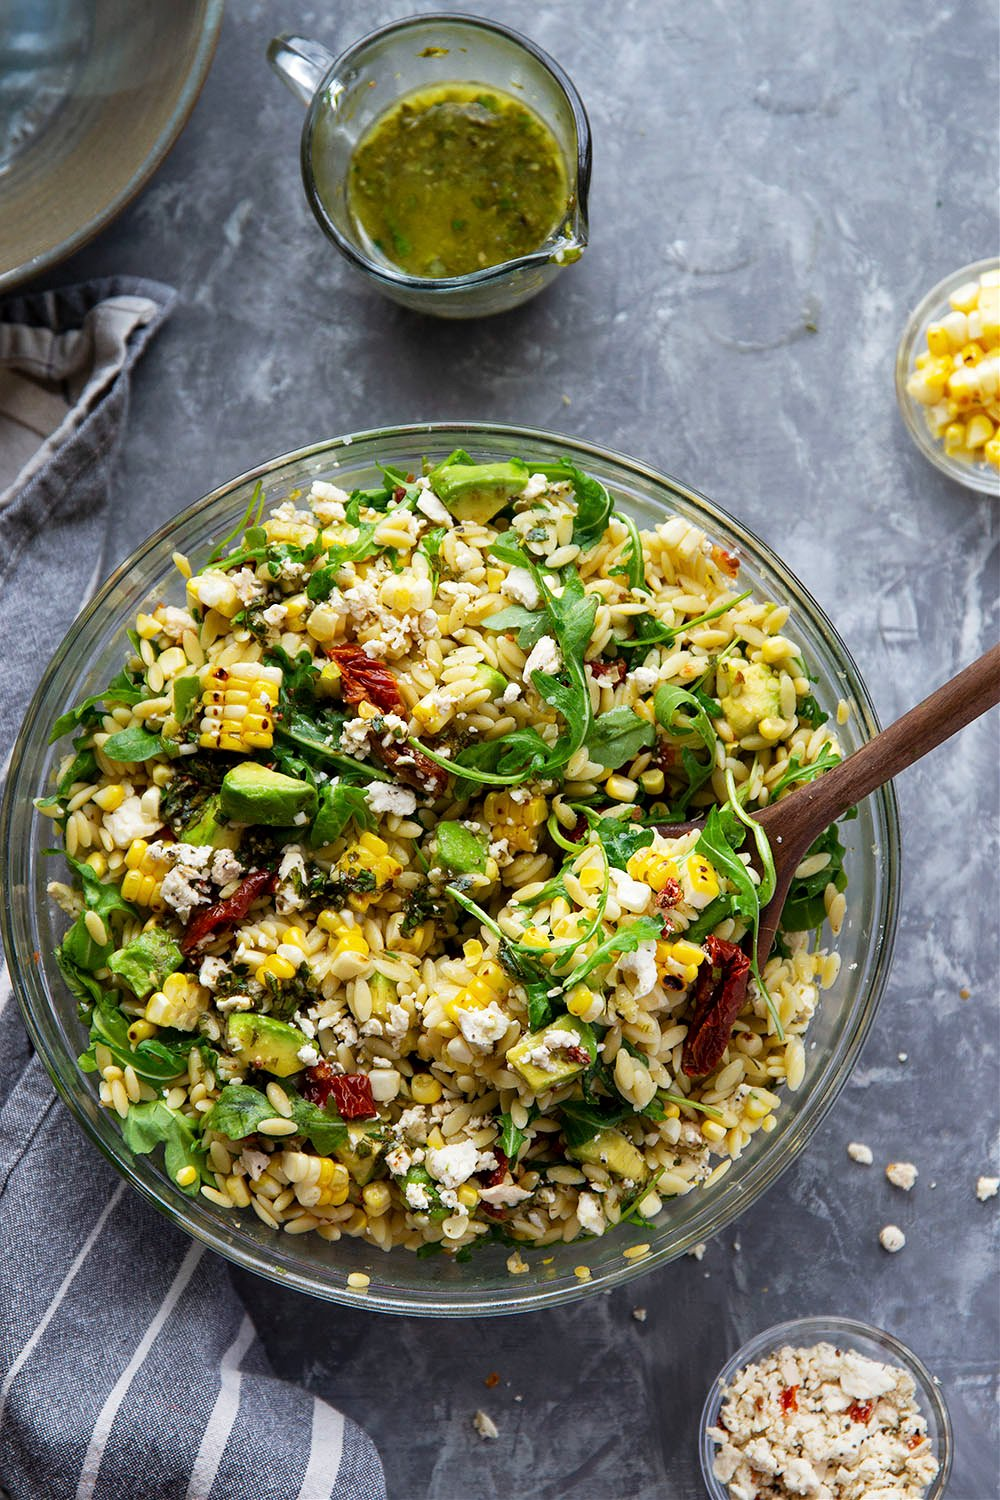 This sun-dried tomato orzo salad is packed with charred sweet corn, silky avocado, tangy feta, and tossed in a flavorful lemon herb vinaigrette. - perfect for a lunch salad or cookout side!